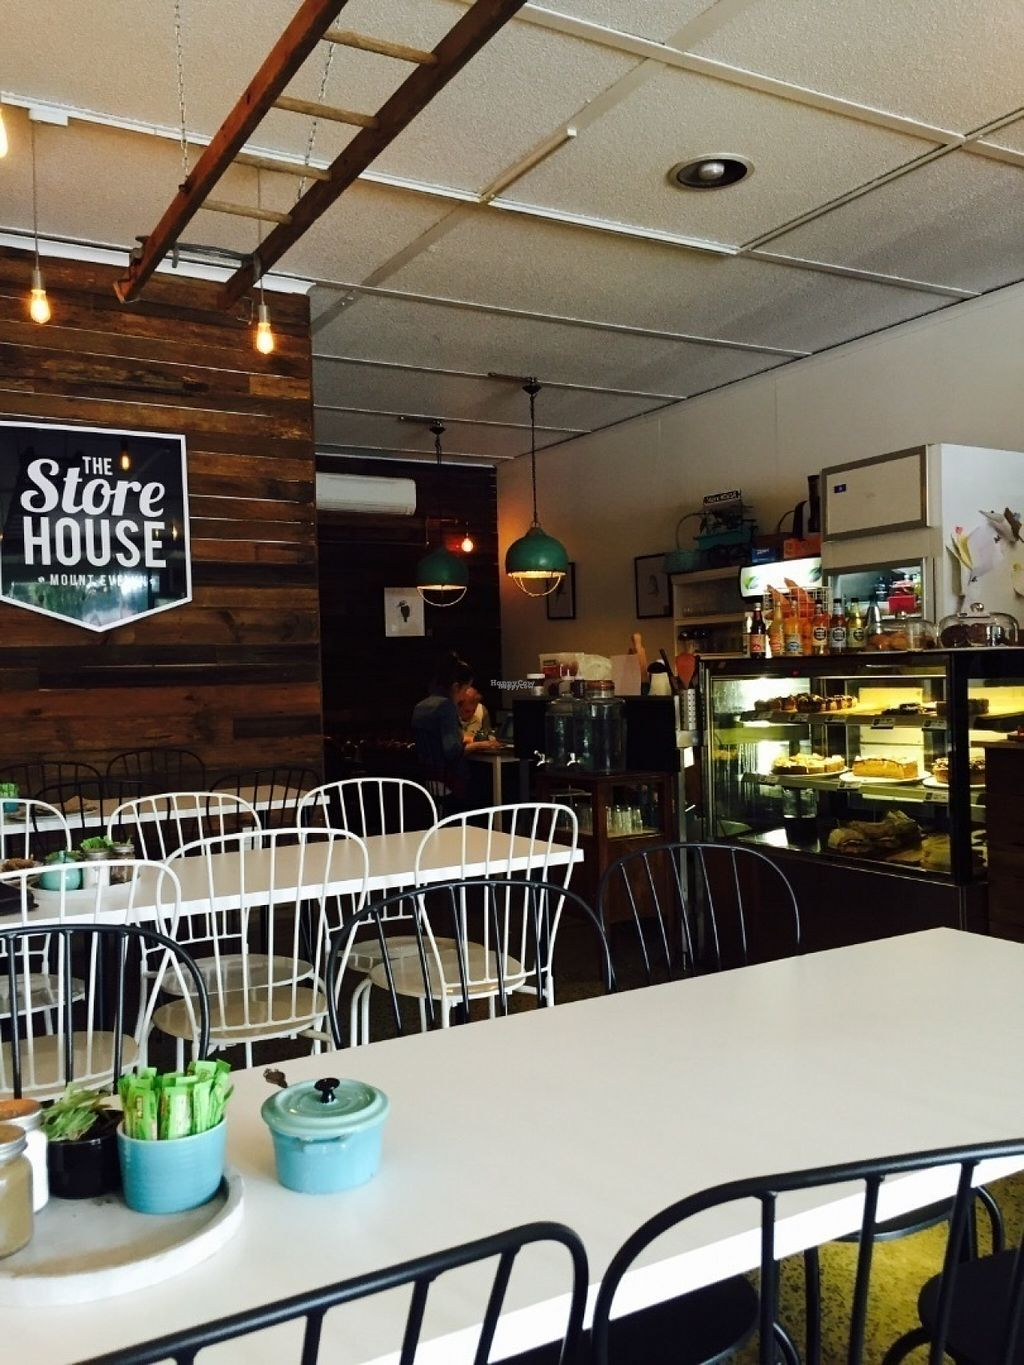 The Storehouse - Mount Evelyn Victoria Restaurant - HappyCow